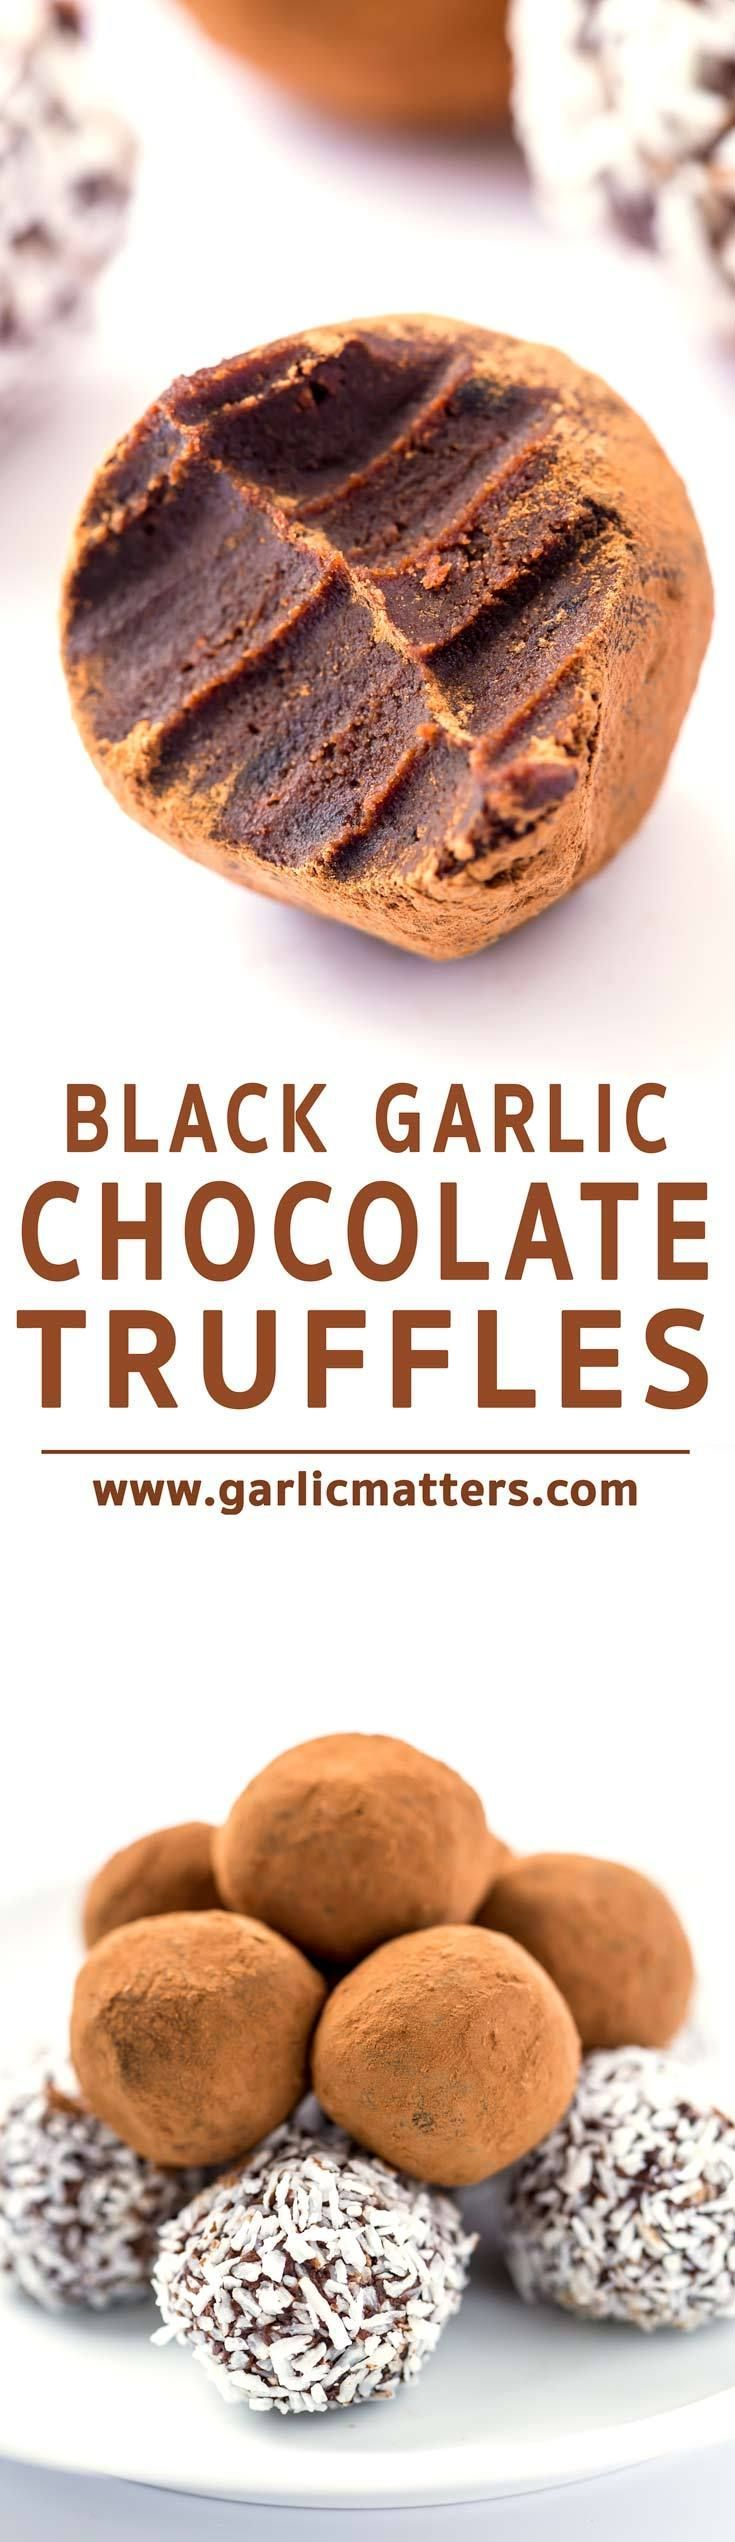 It's not a prank! Each black garlic chocolate truffle is a soft, rich, sophisticated mouthful of deliciousness, which will please even the sweetest, chocolate loving tooth in a bite.